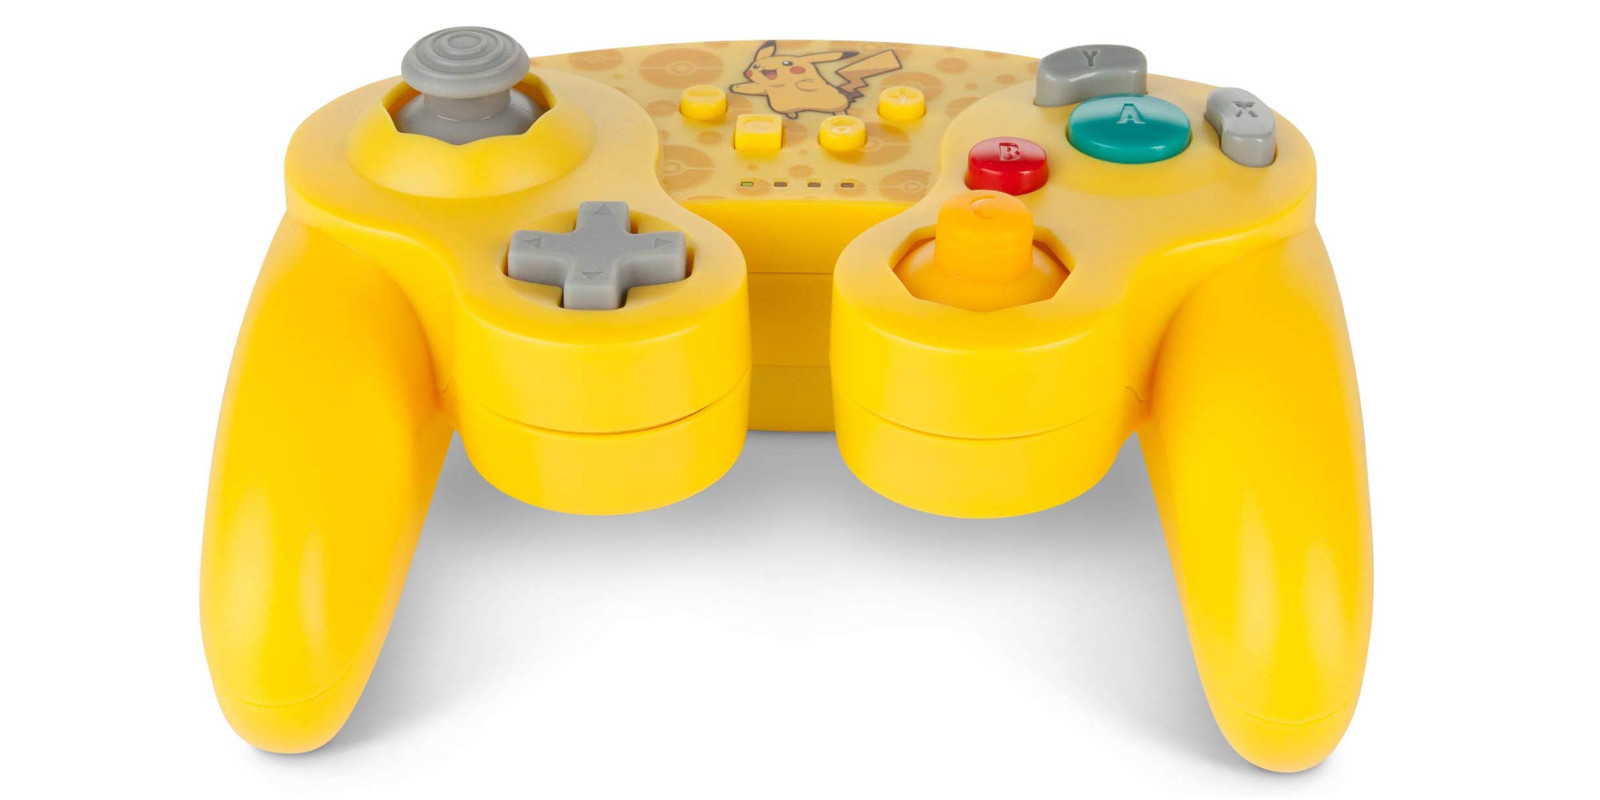 PowerA's Wireless Switch GameCube controller from $33.50 (Reg. $50) + more - 9to5Toys